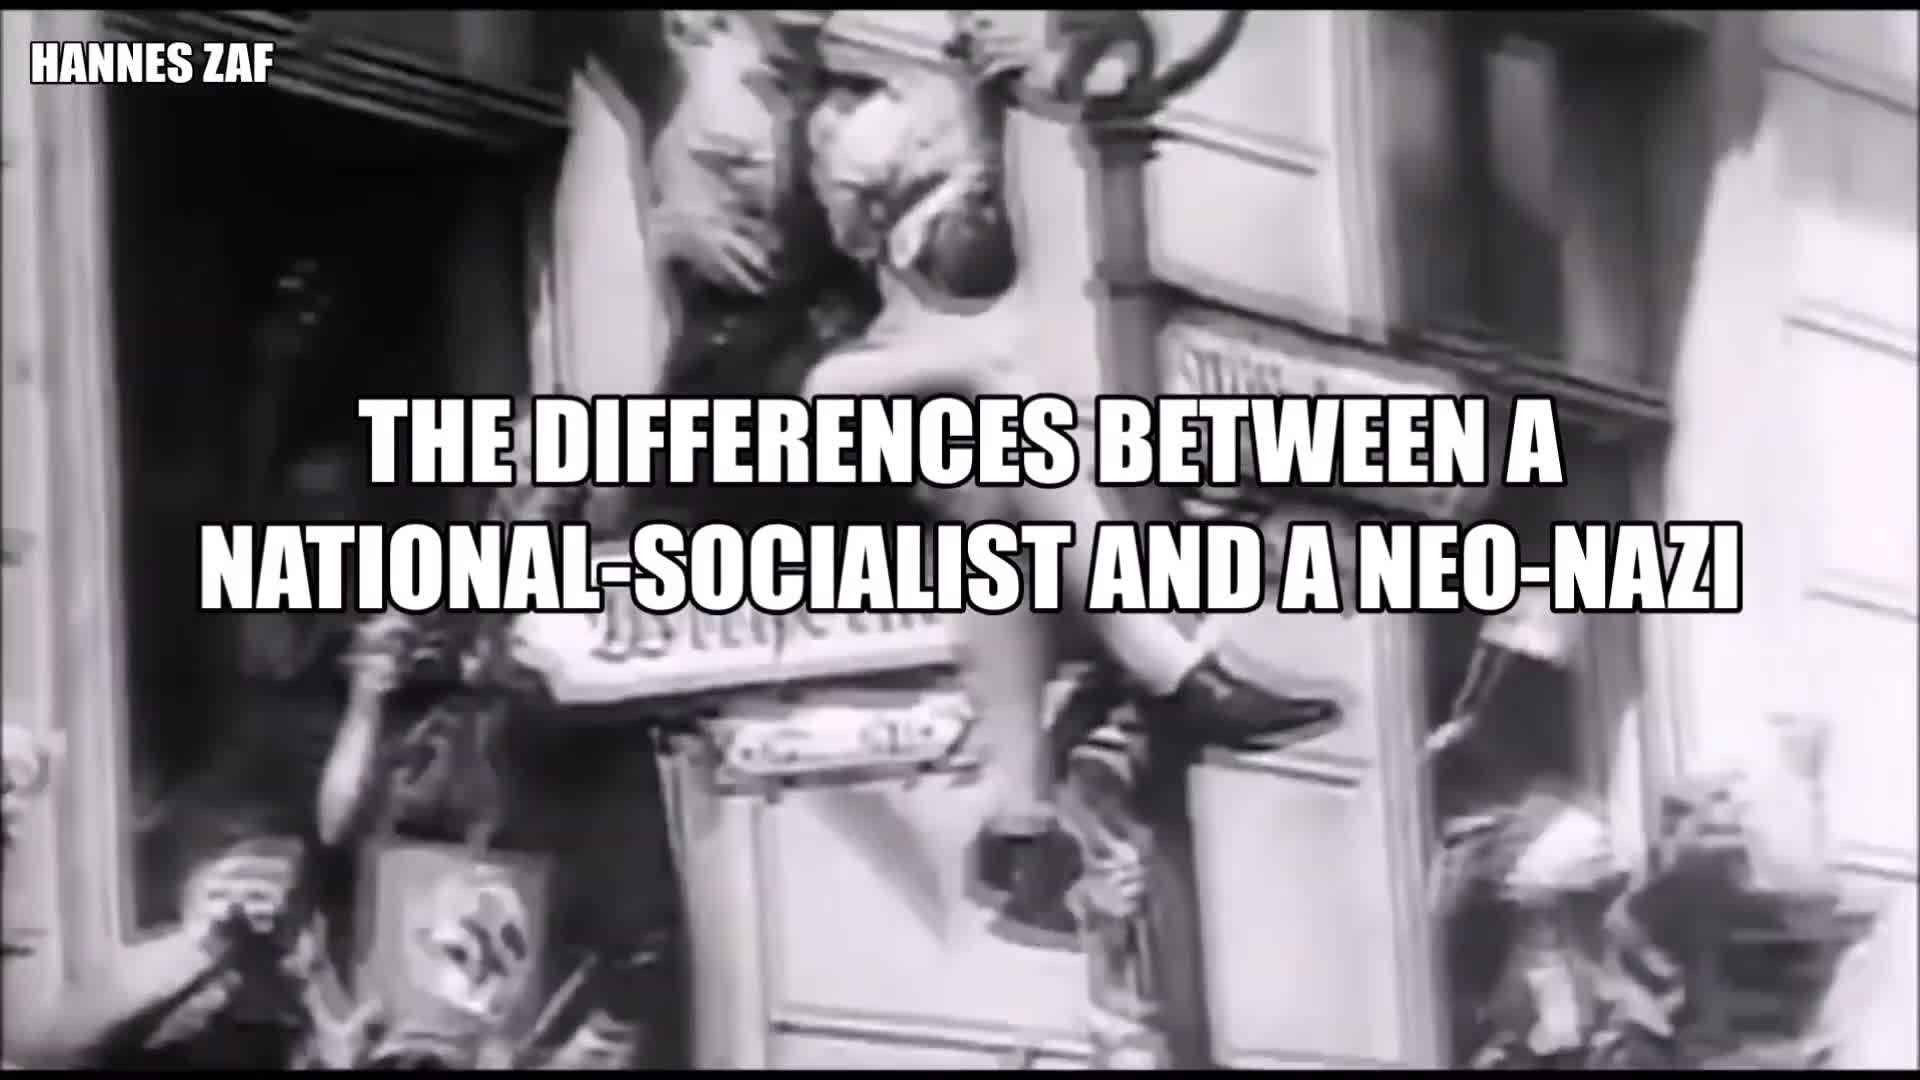 The differences between a National Socialist and a Neo-Nazi